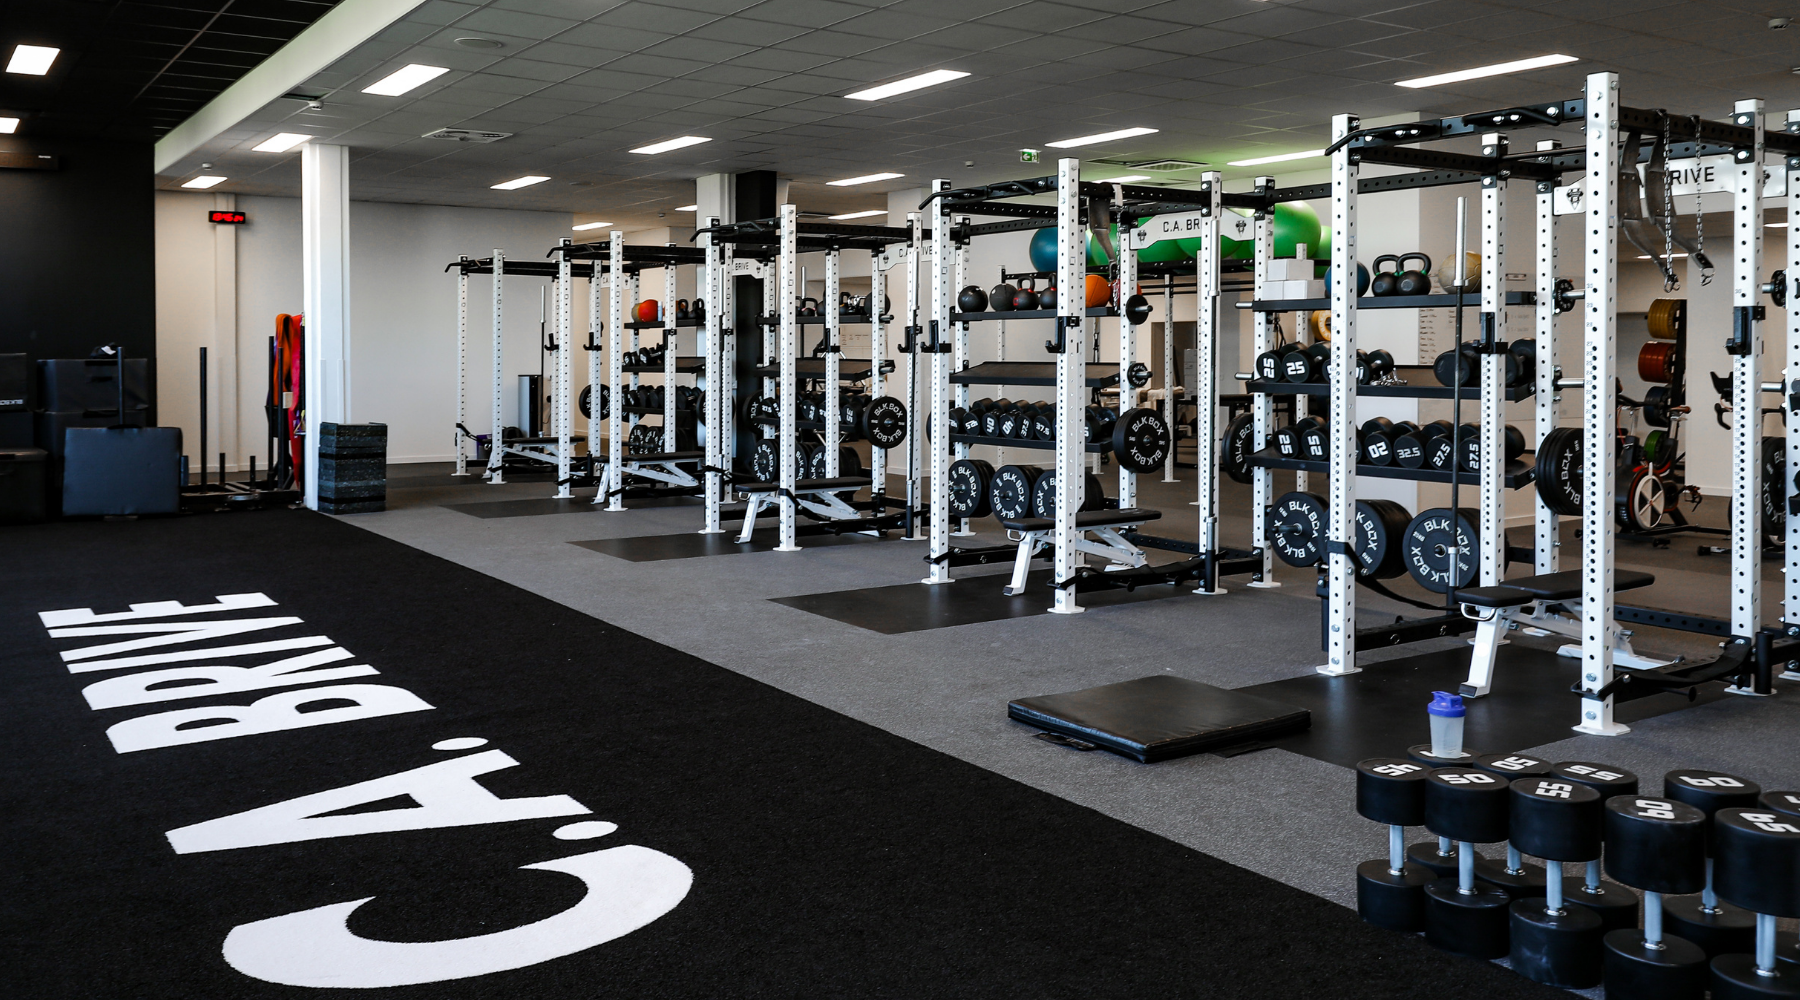 C.A Brive High Performance Facility